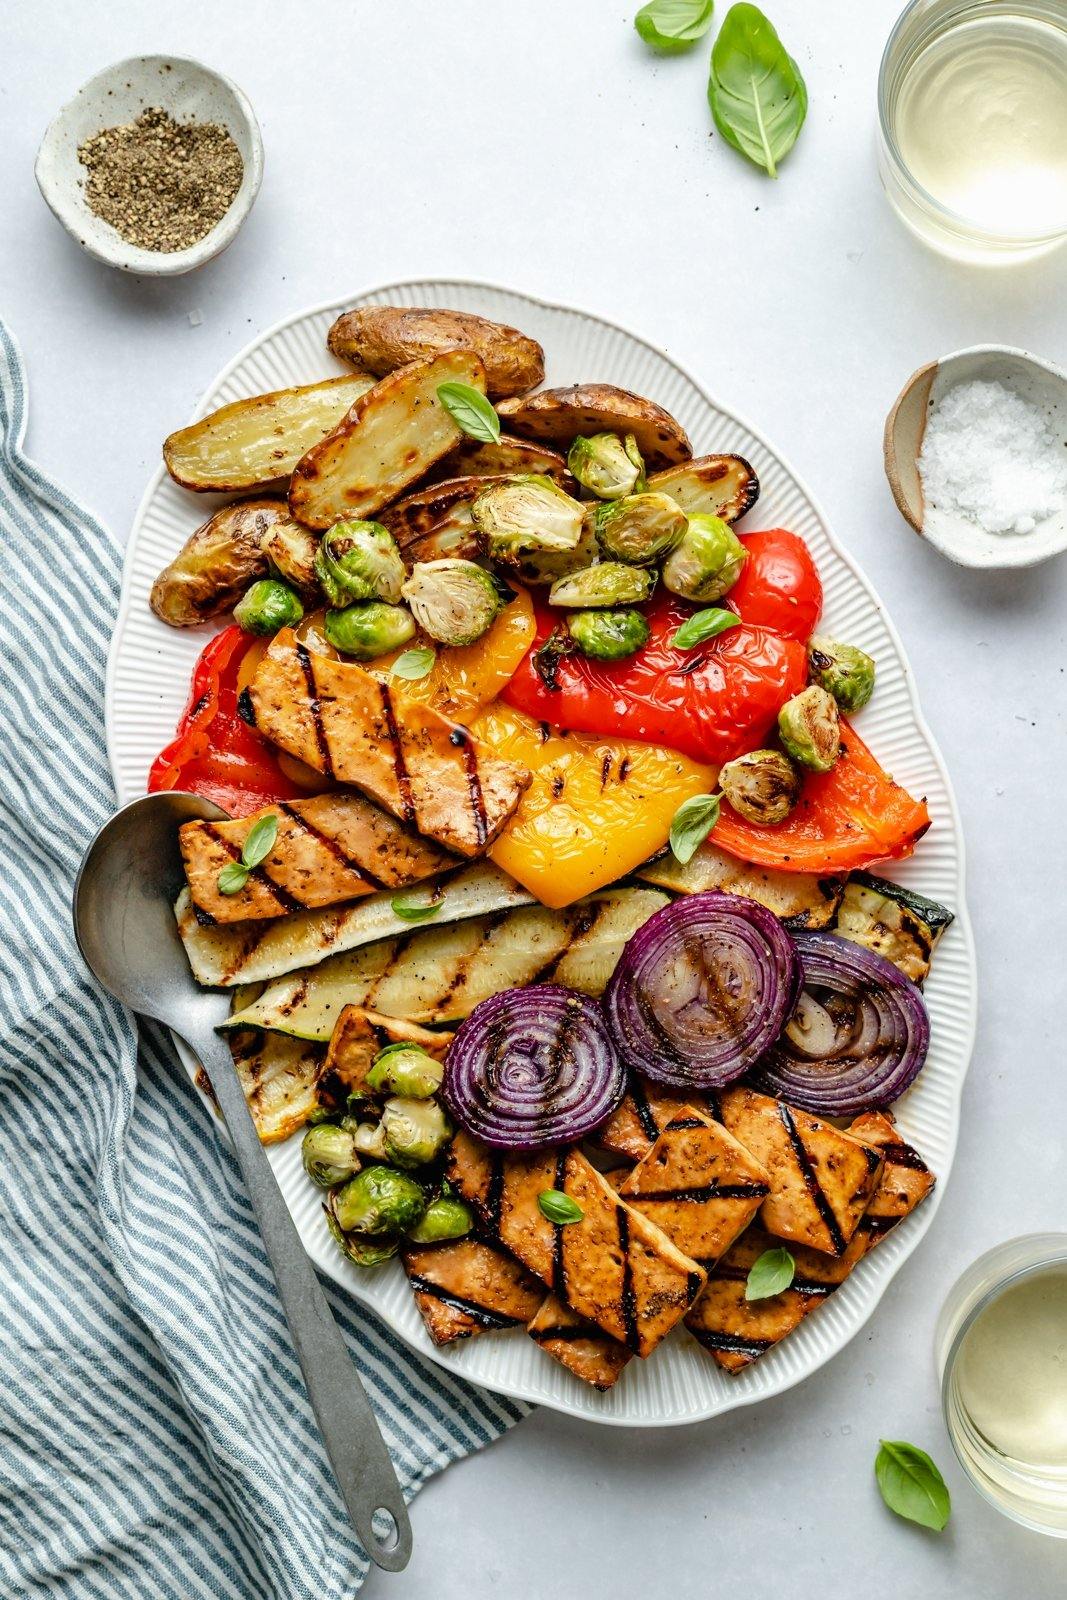 grilled tofu on a platter with grilled vegetables